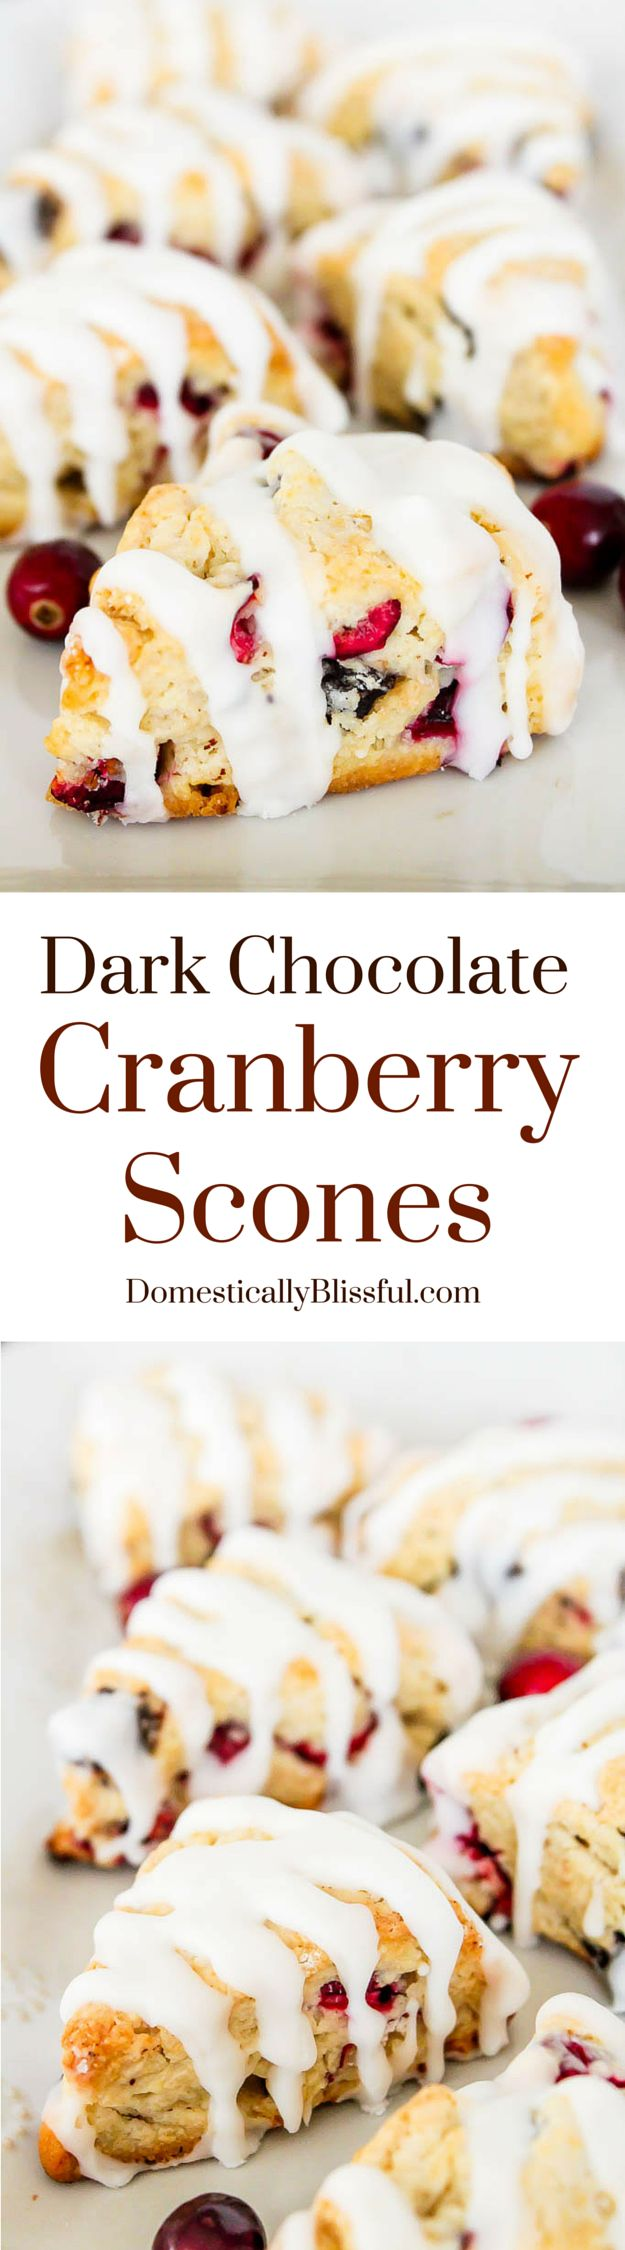 Dark Chocolate Cranberry Scones are filled with dark chocolate chunks, fresh cranberries, & drizzled with french vanilla icing!